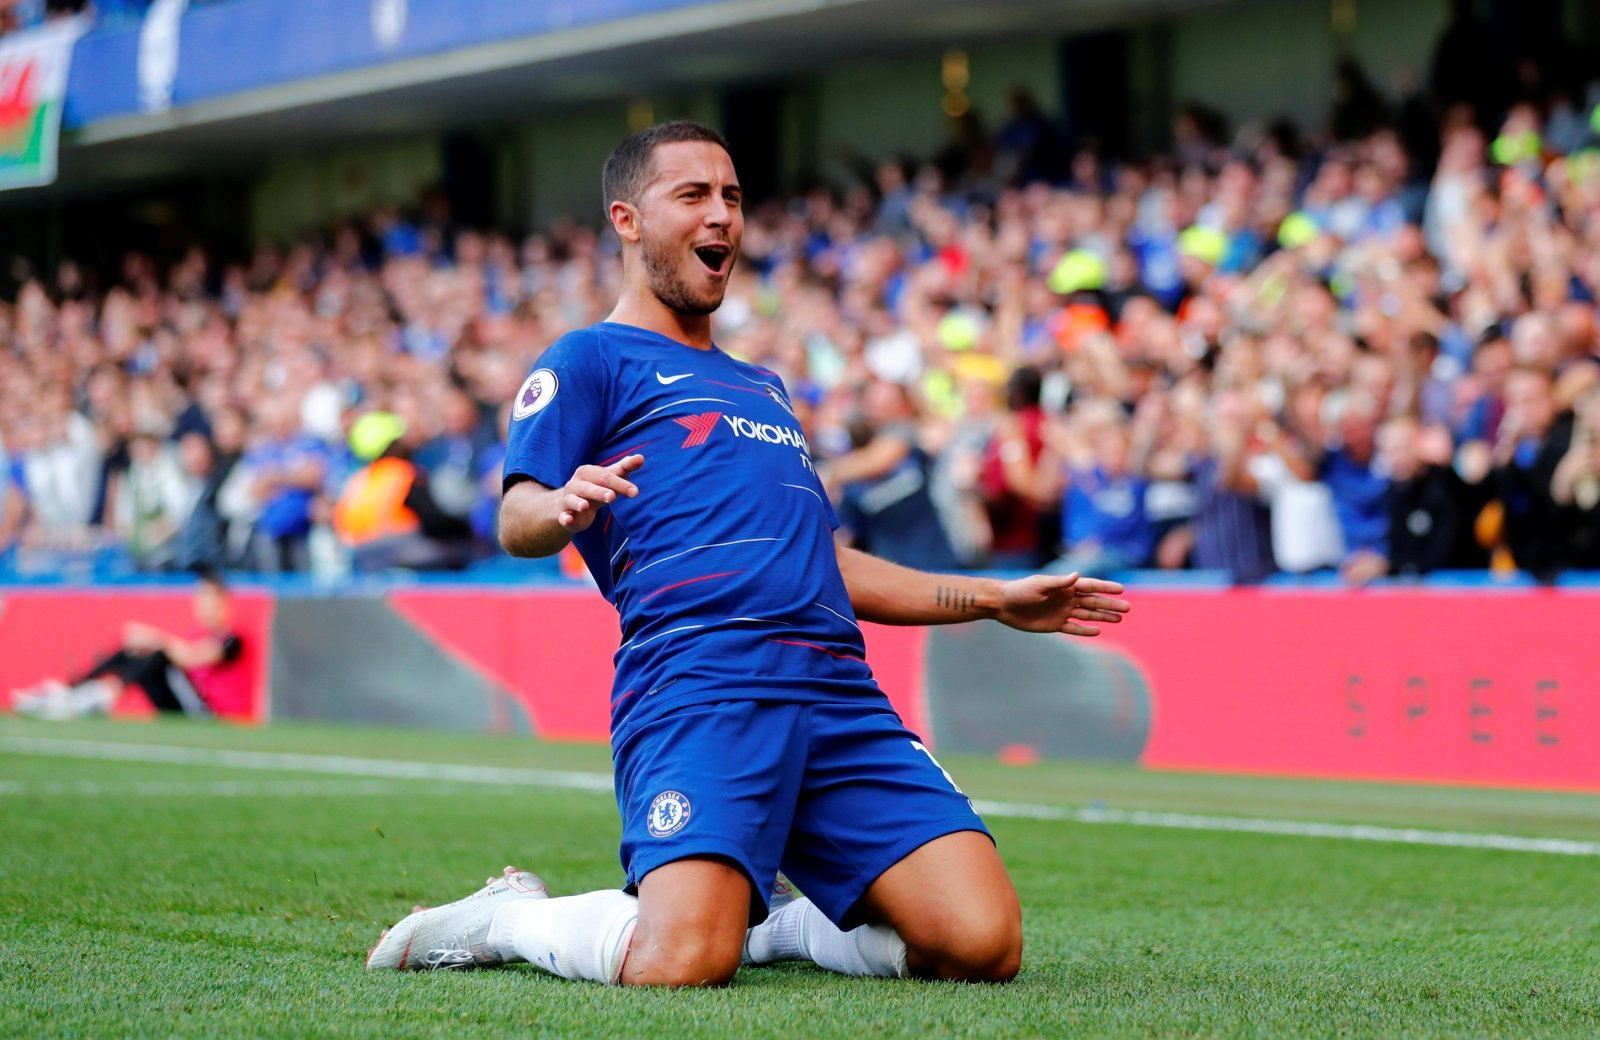 Chelsea fans are loving latest comments from Eden Hazard